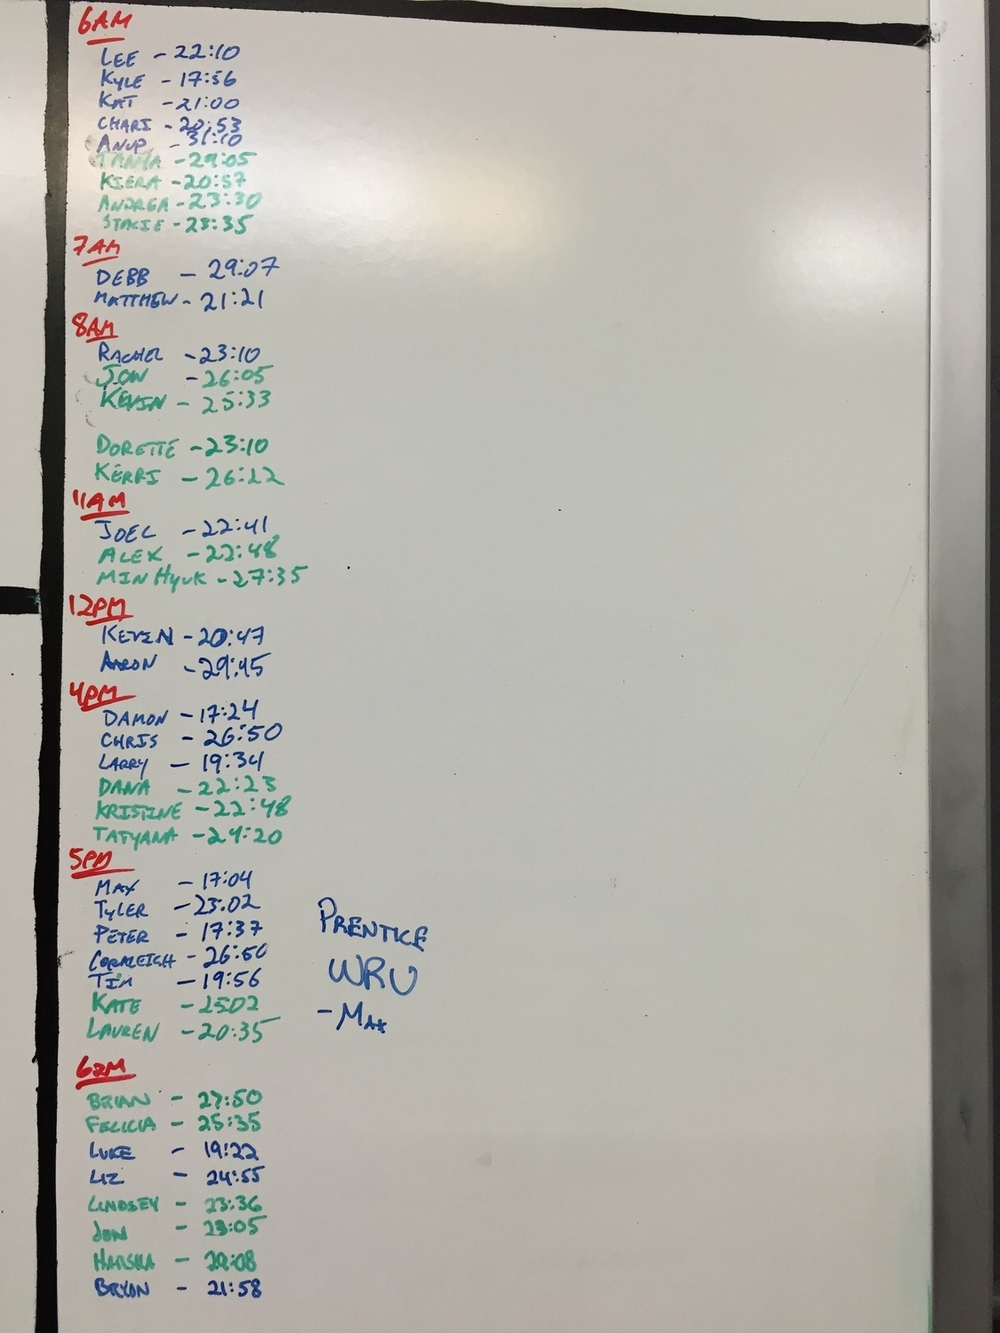 Oct 13 WOD Results